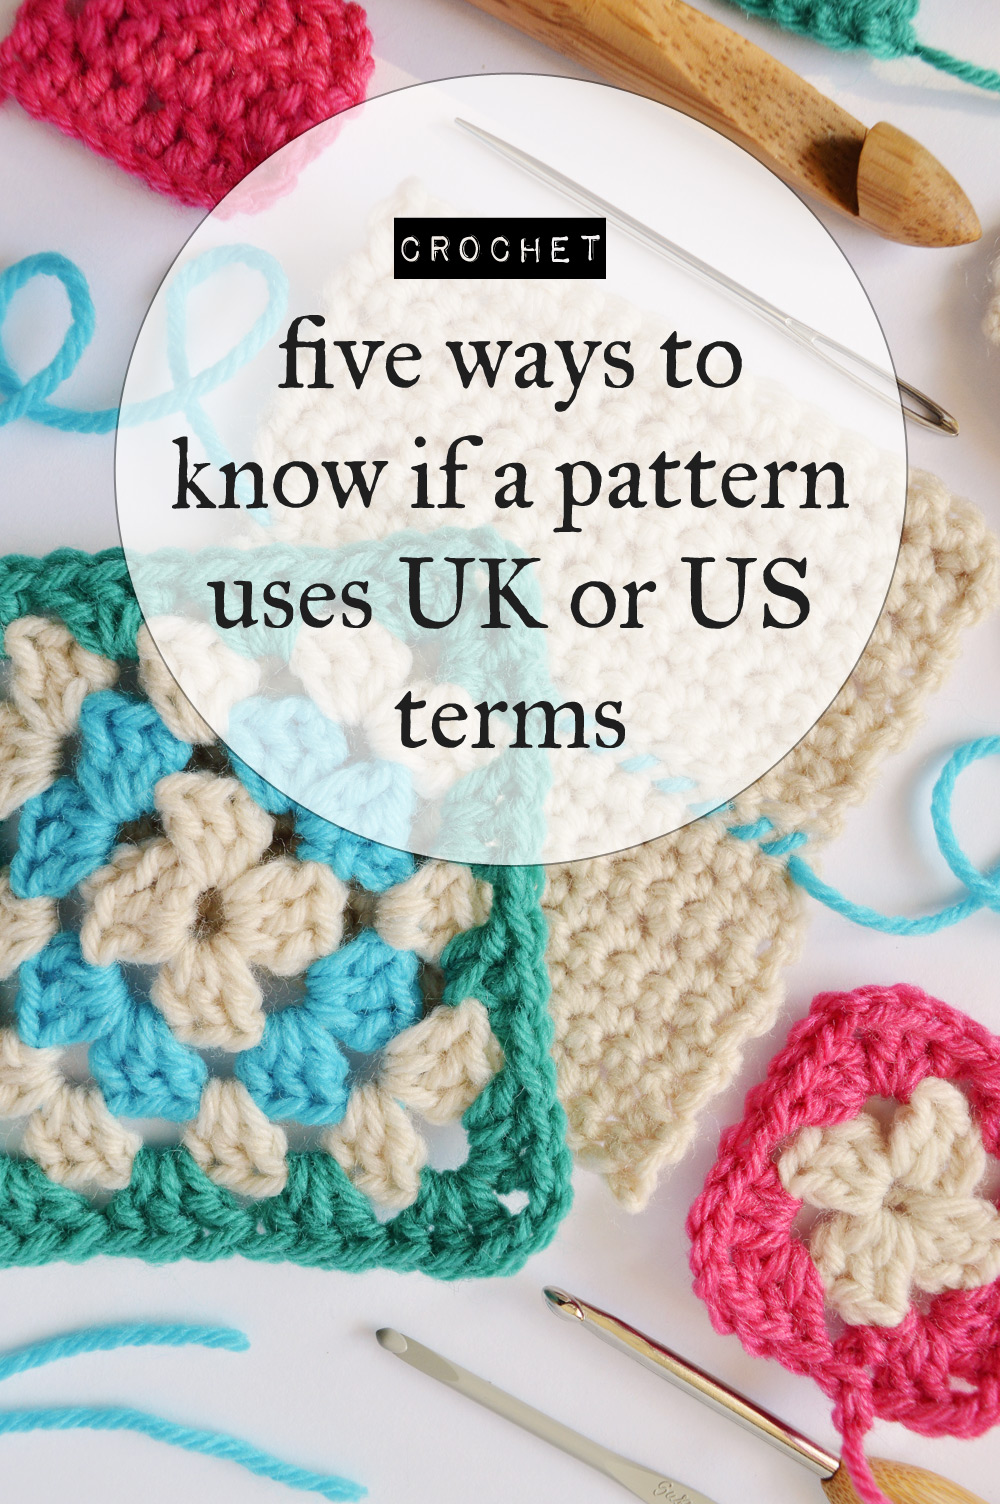 Crochet Stitches Uk To Us : How to know if a crochet pattern uses UK or US terms @craftingfingers